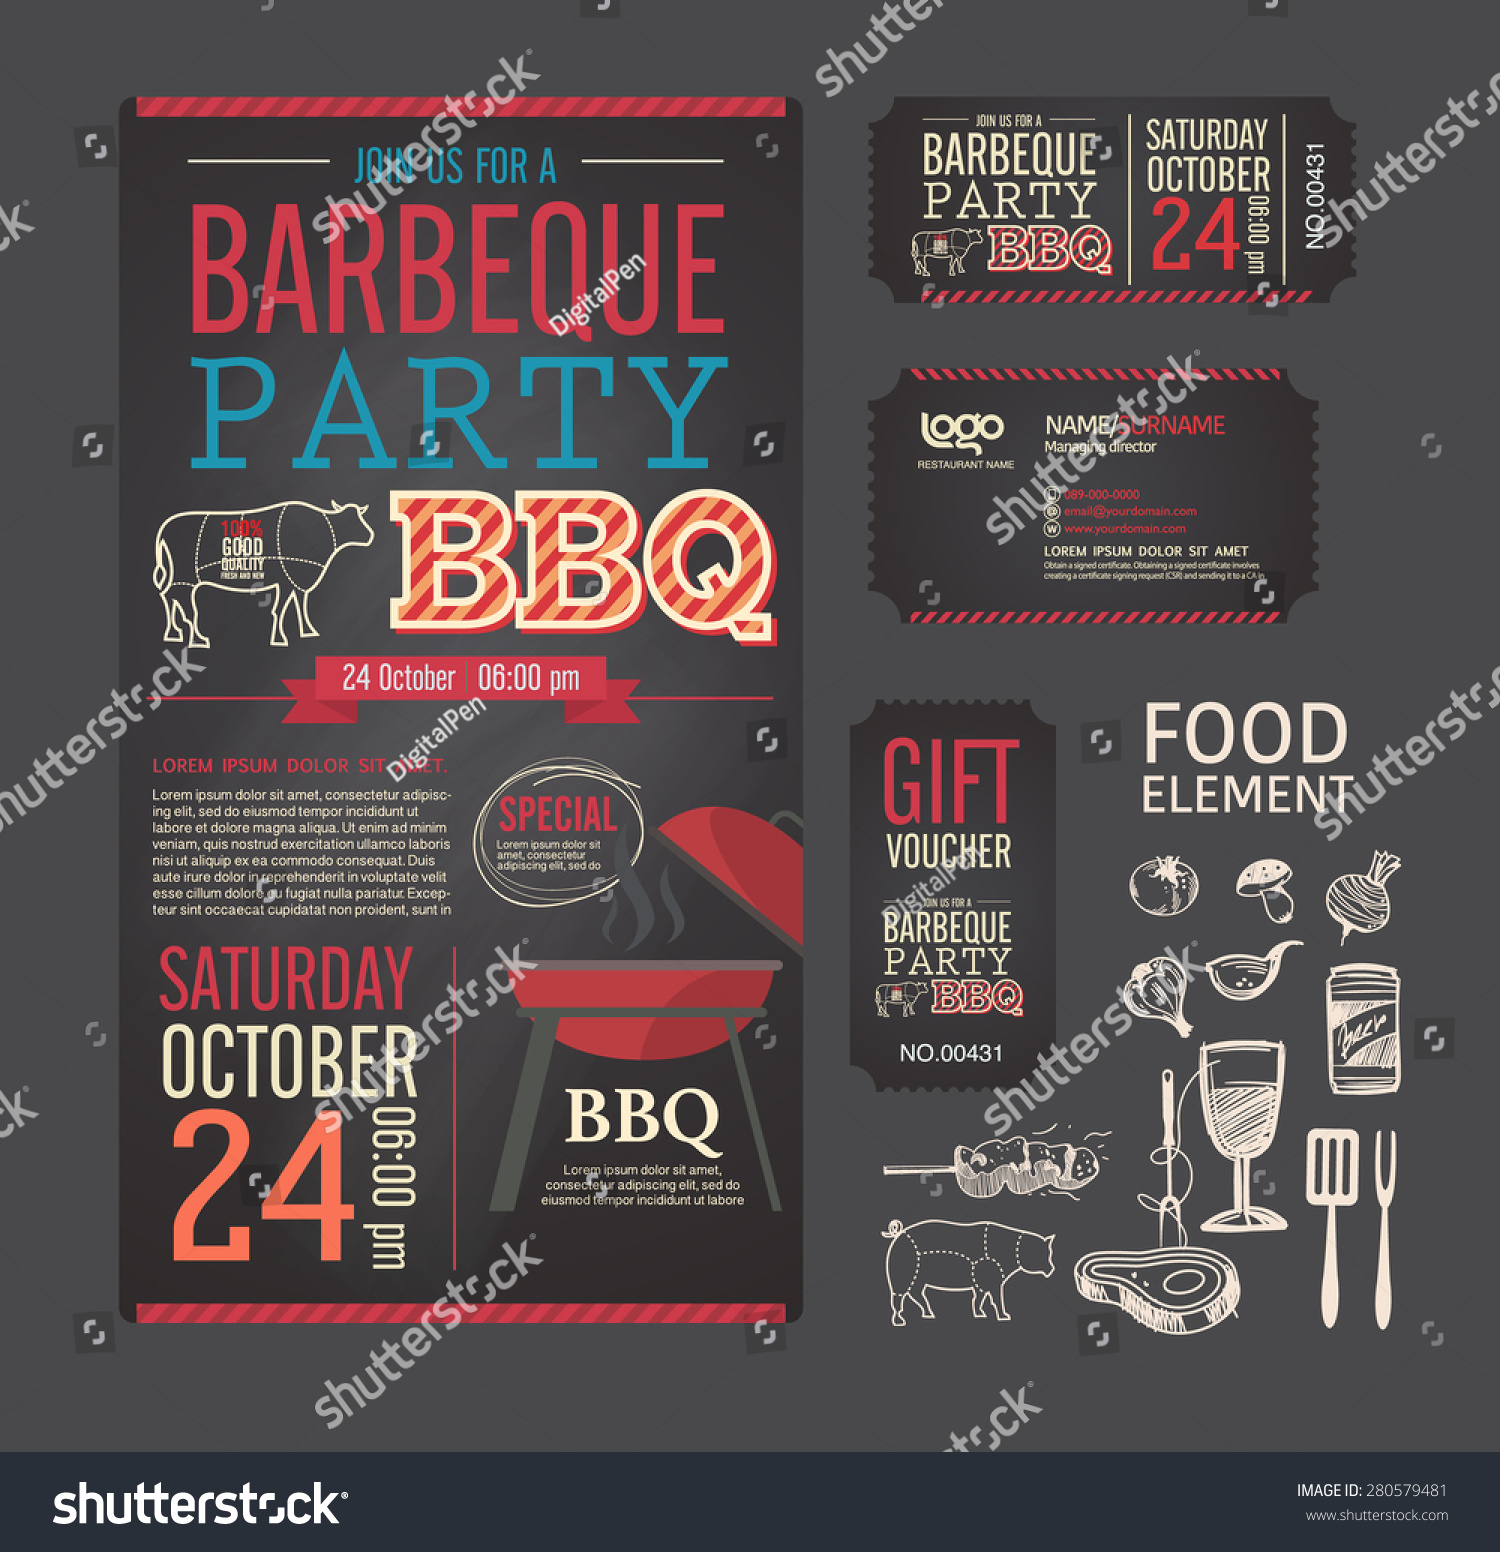 Barbecue Party Bbq Template Menu Design Vector 280579481 – Food Tickets Template